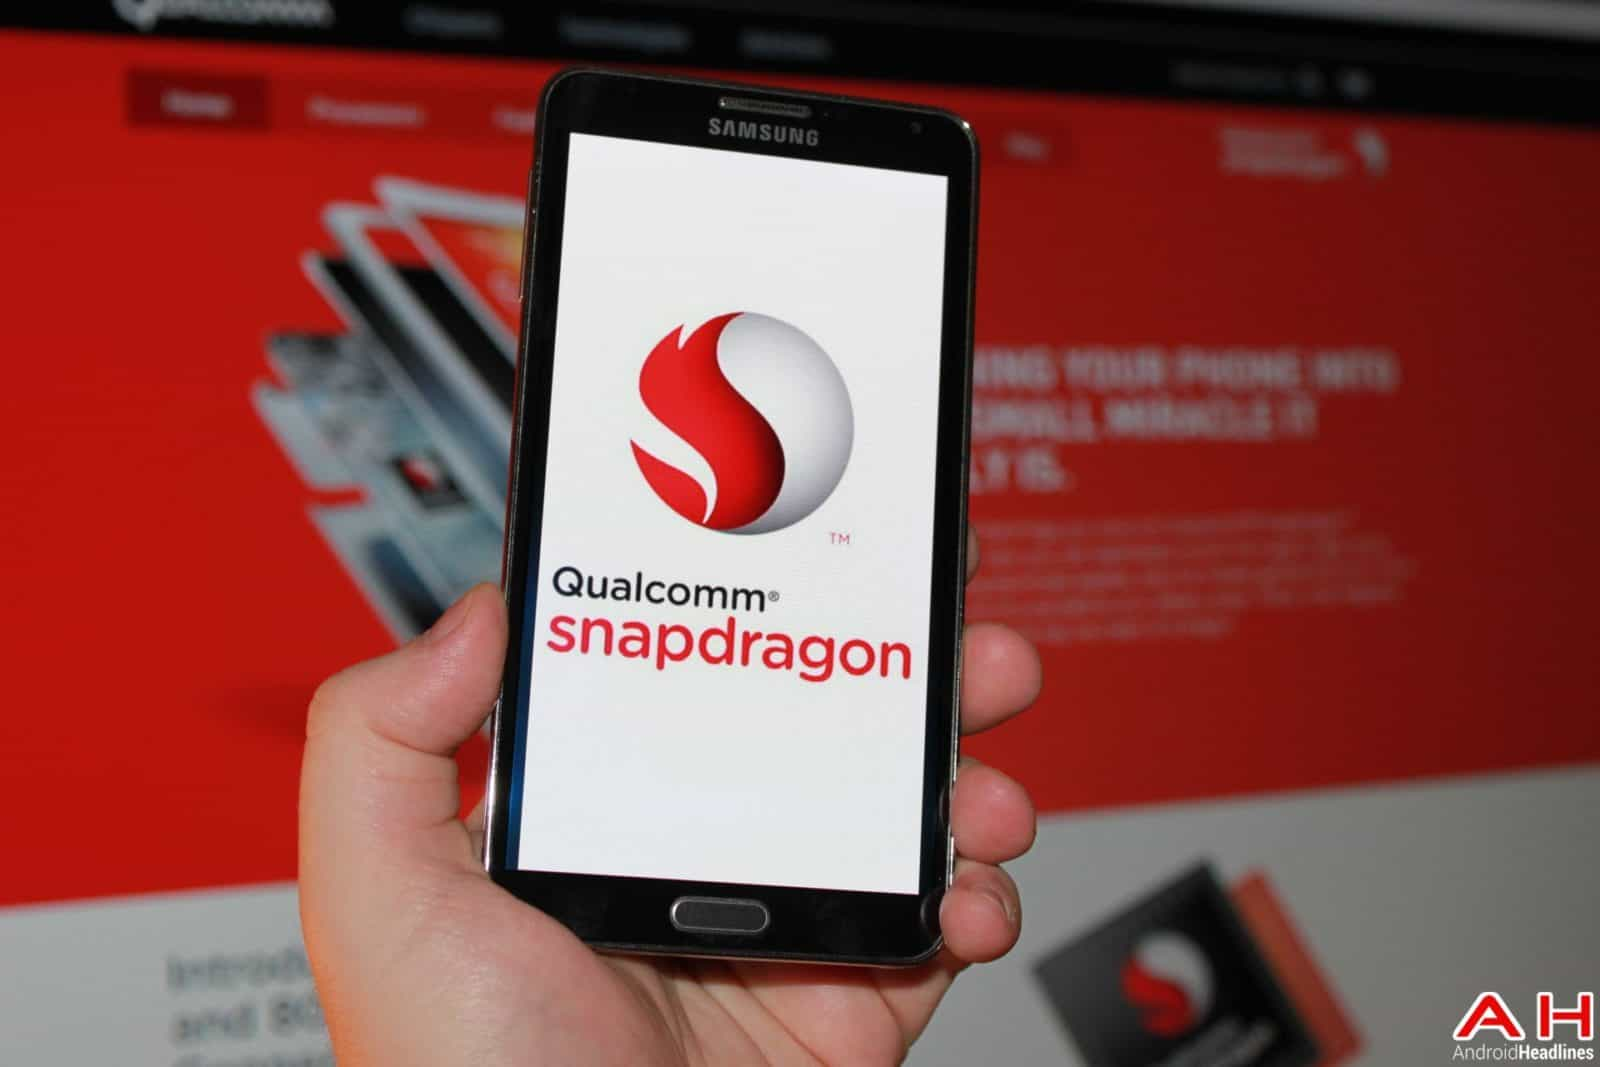 AH SnapDragon Qualcomm 1.9